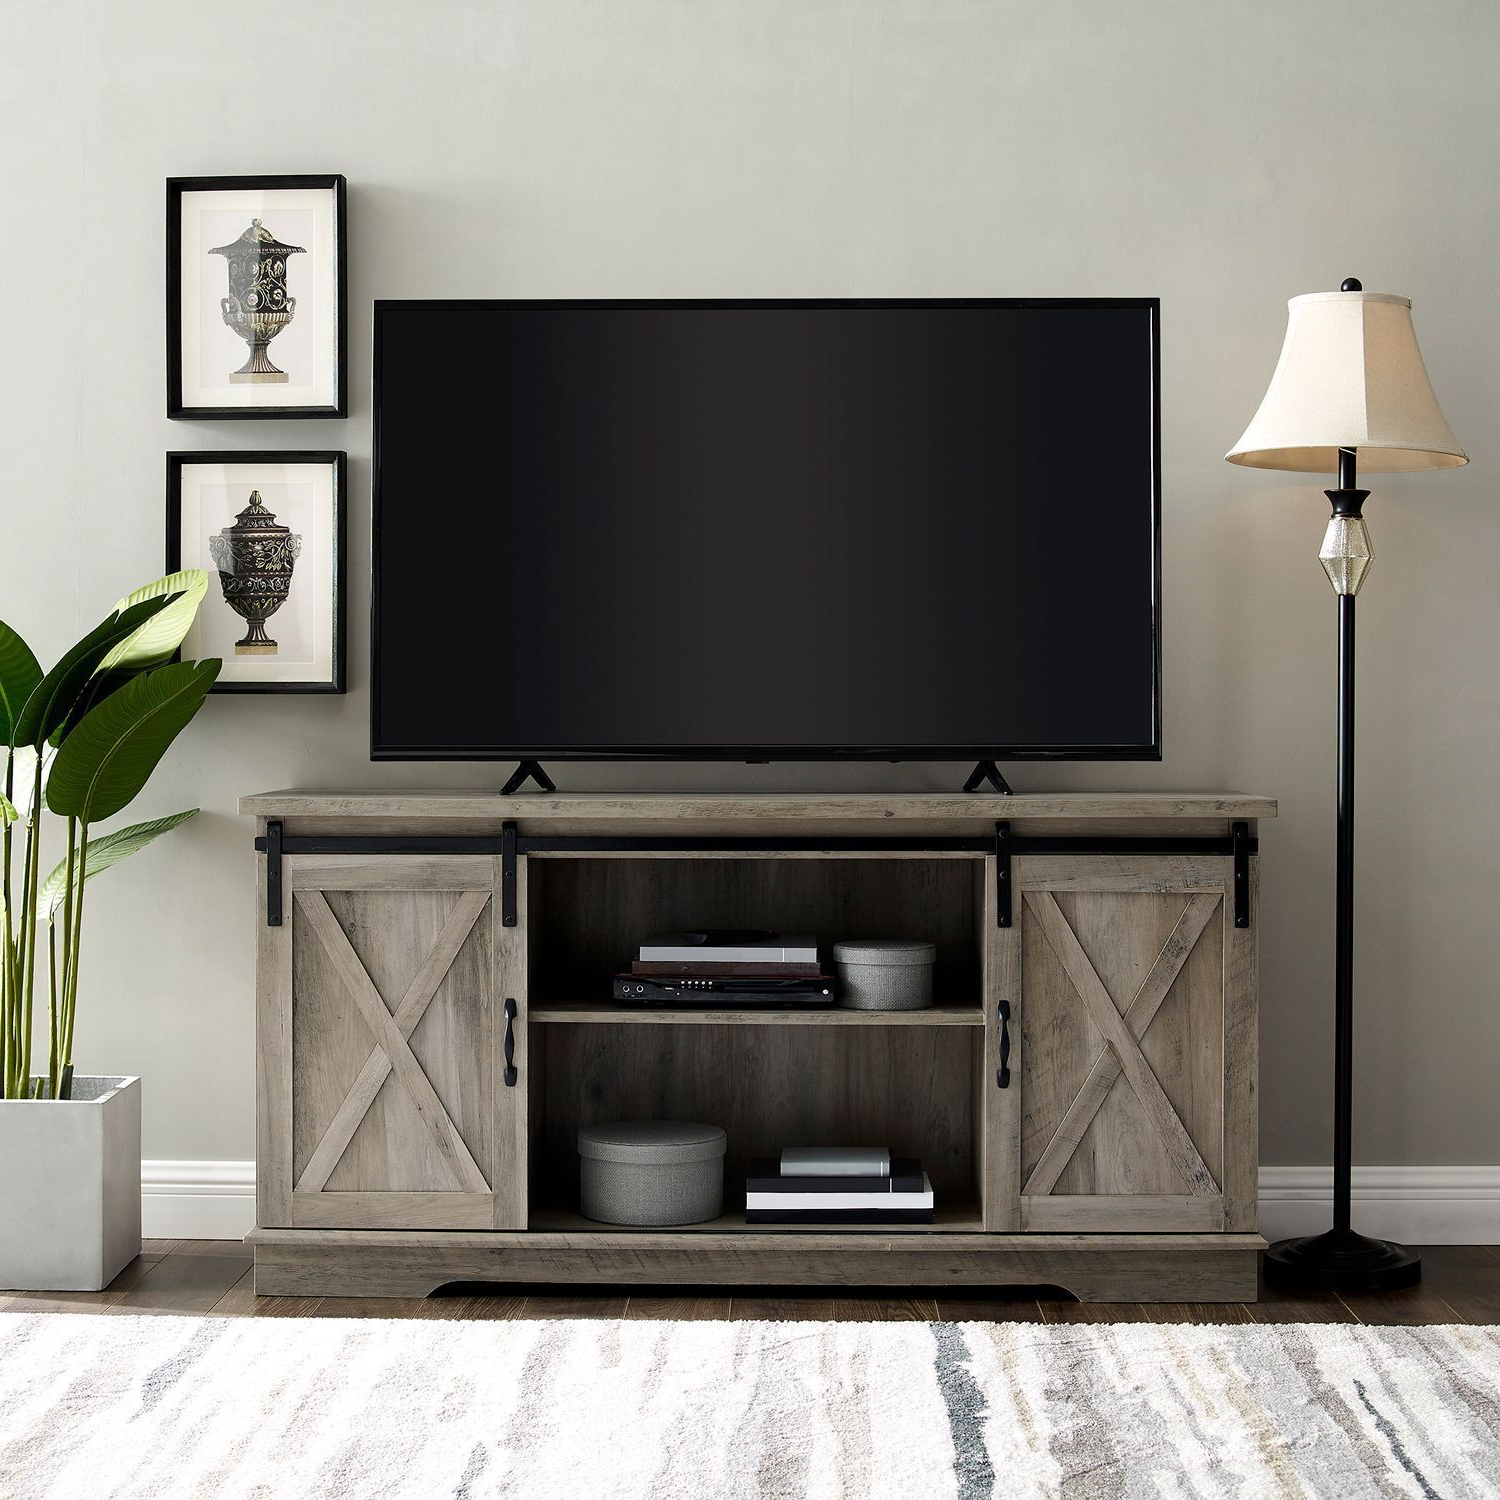 """Farmhouse Graywash Sliding Barn Door 58"""" Tv Stand   Living For Jaxpety 58"""" Farmhouse Sliding Barn Door Tv Stands (View 13 of 20)"""